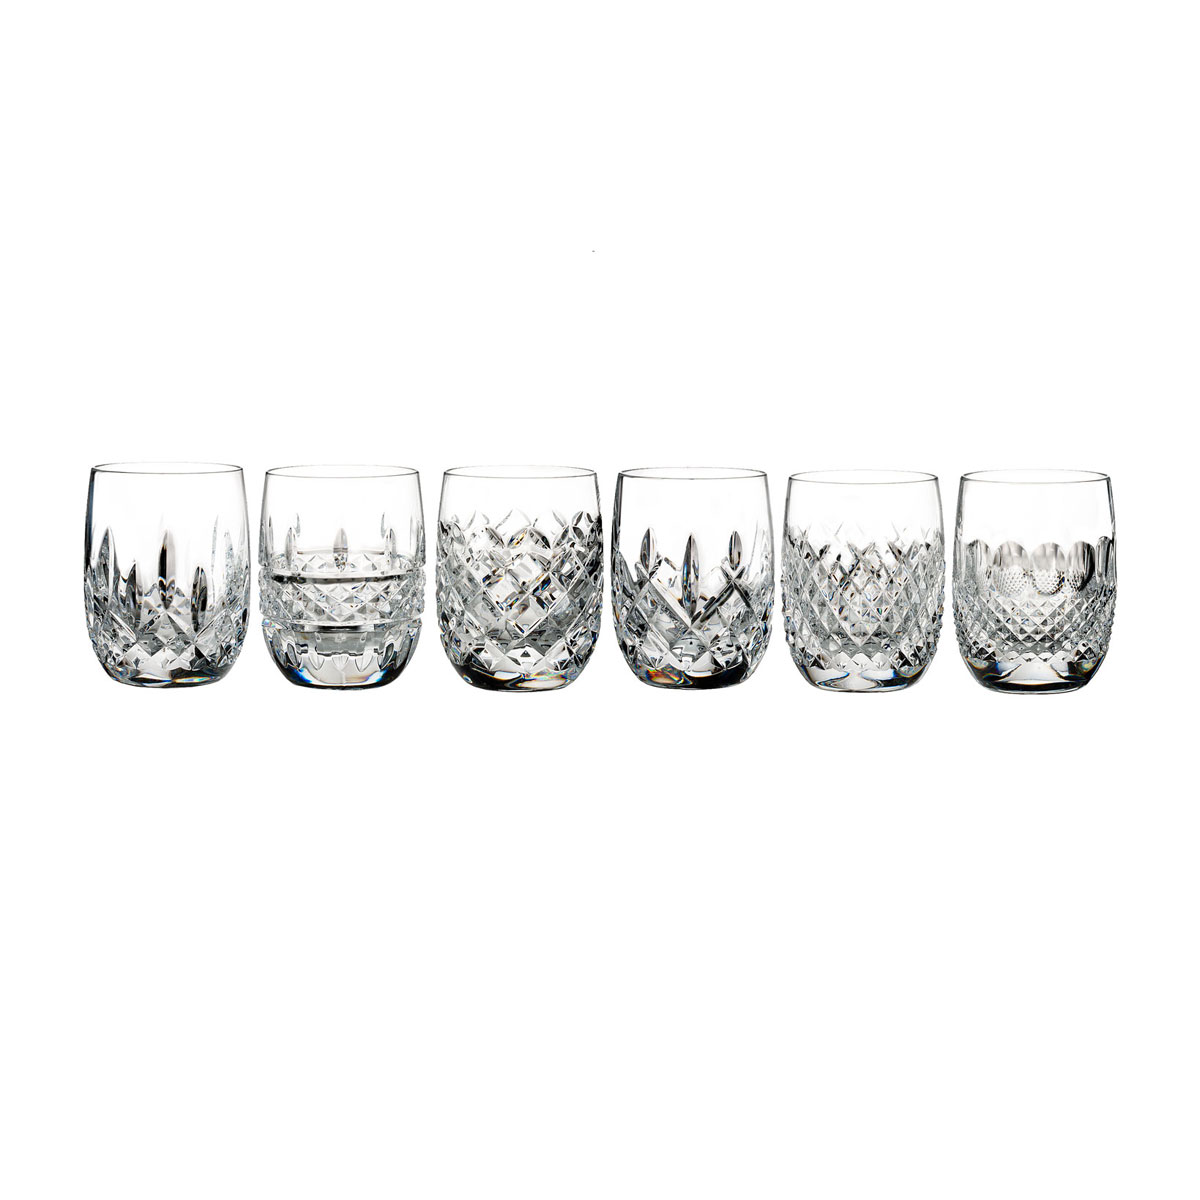 Waterford Crystal, Lismore Connoisseur Heritage Rounded Tumbler, Set of 6